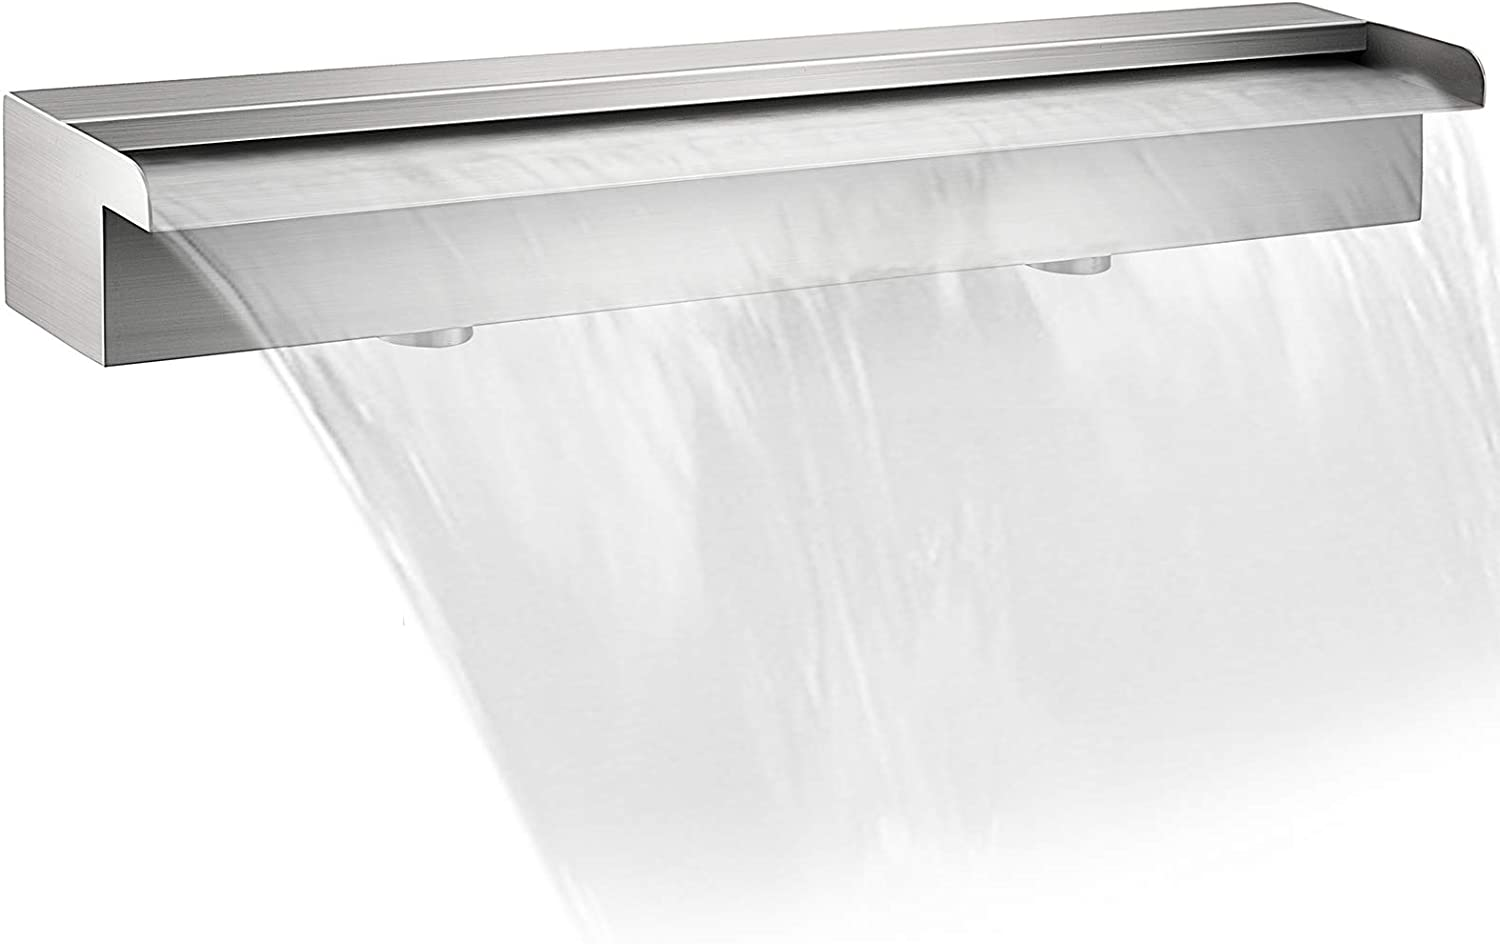 Special price Patiolife Pool Fountain Stainless Steel Waterfall 4 23.6